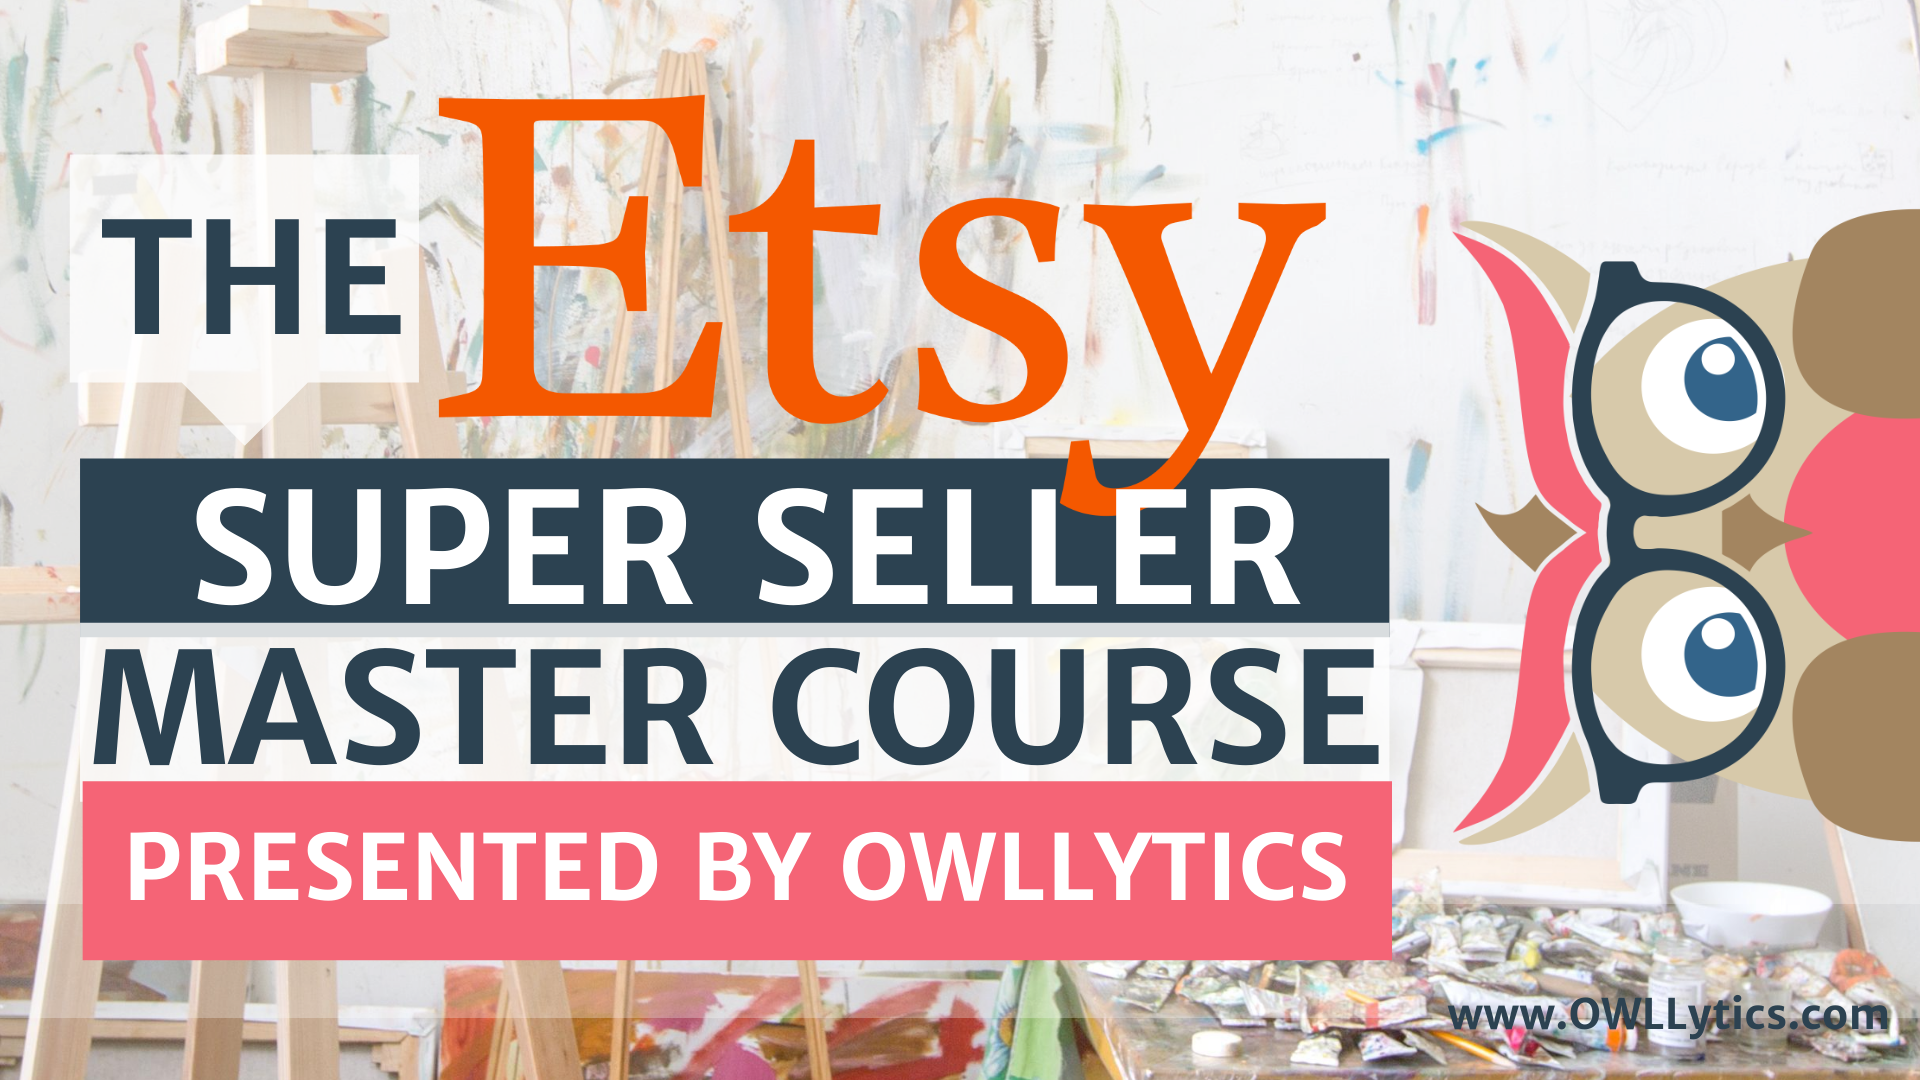 The Etsy Super Seller Master Course by OWLLytics